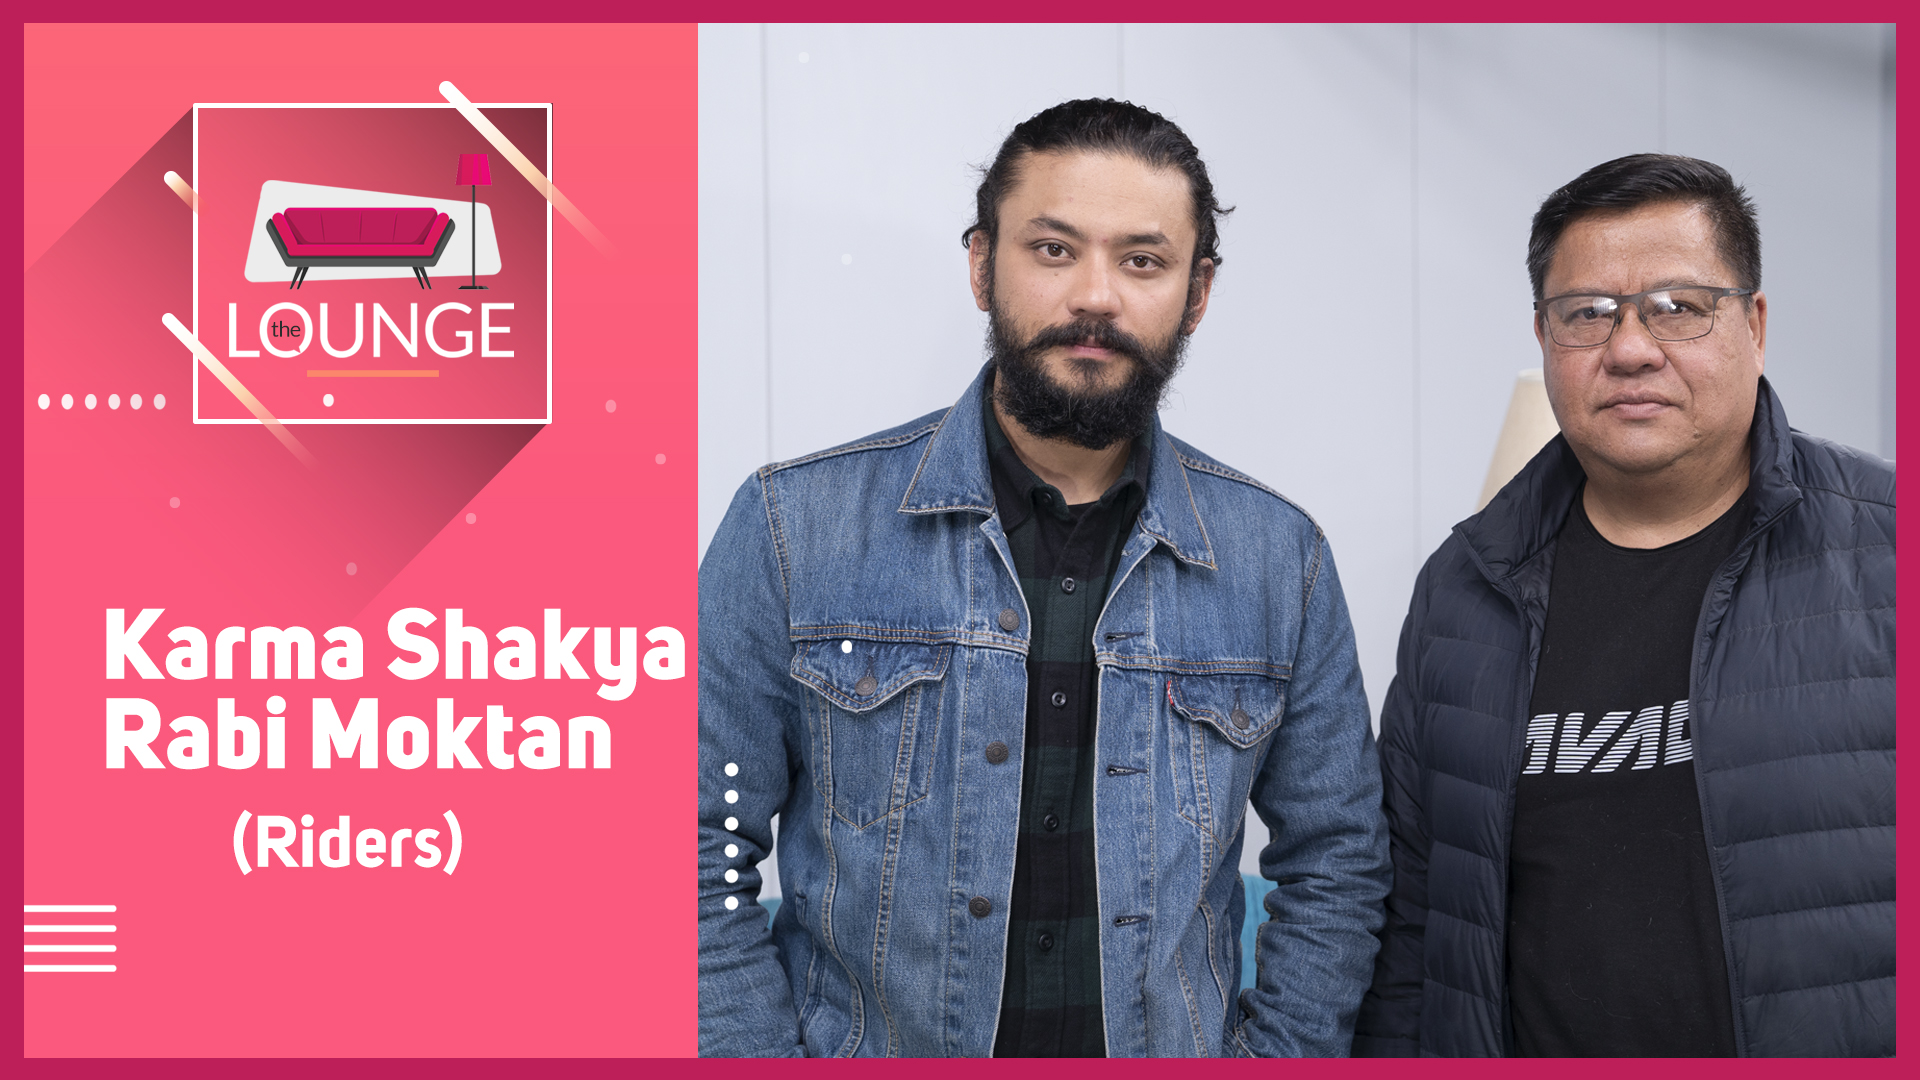 45 days of a bike ride to India / Karma Shakya and Ravi Moktan | The Lounge with Jai Pradhan